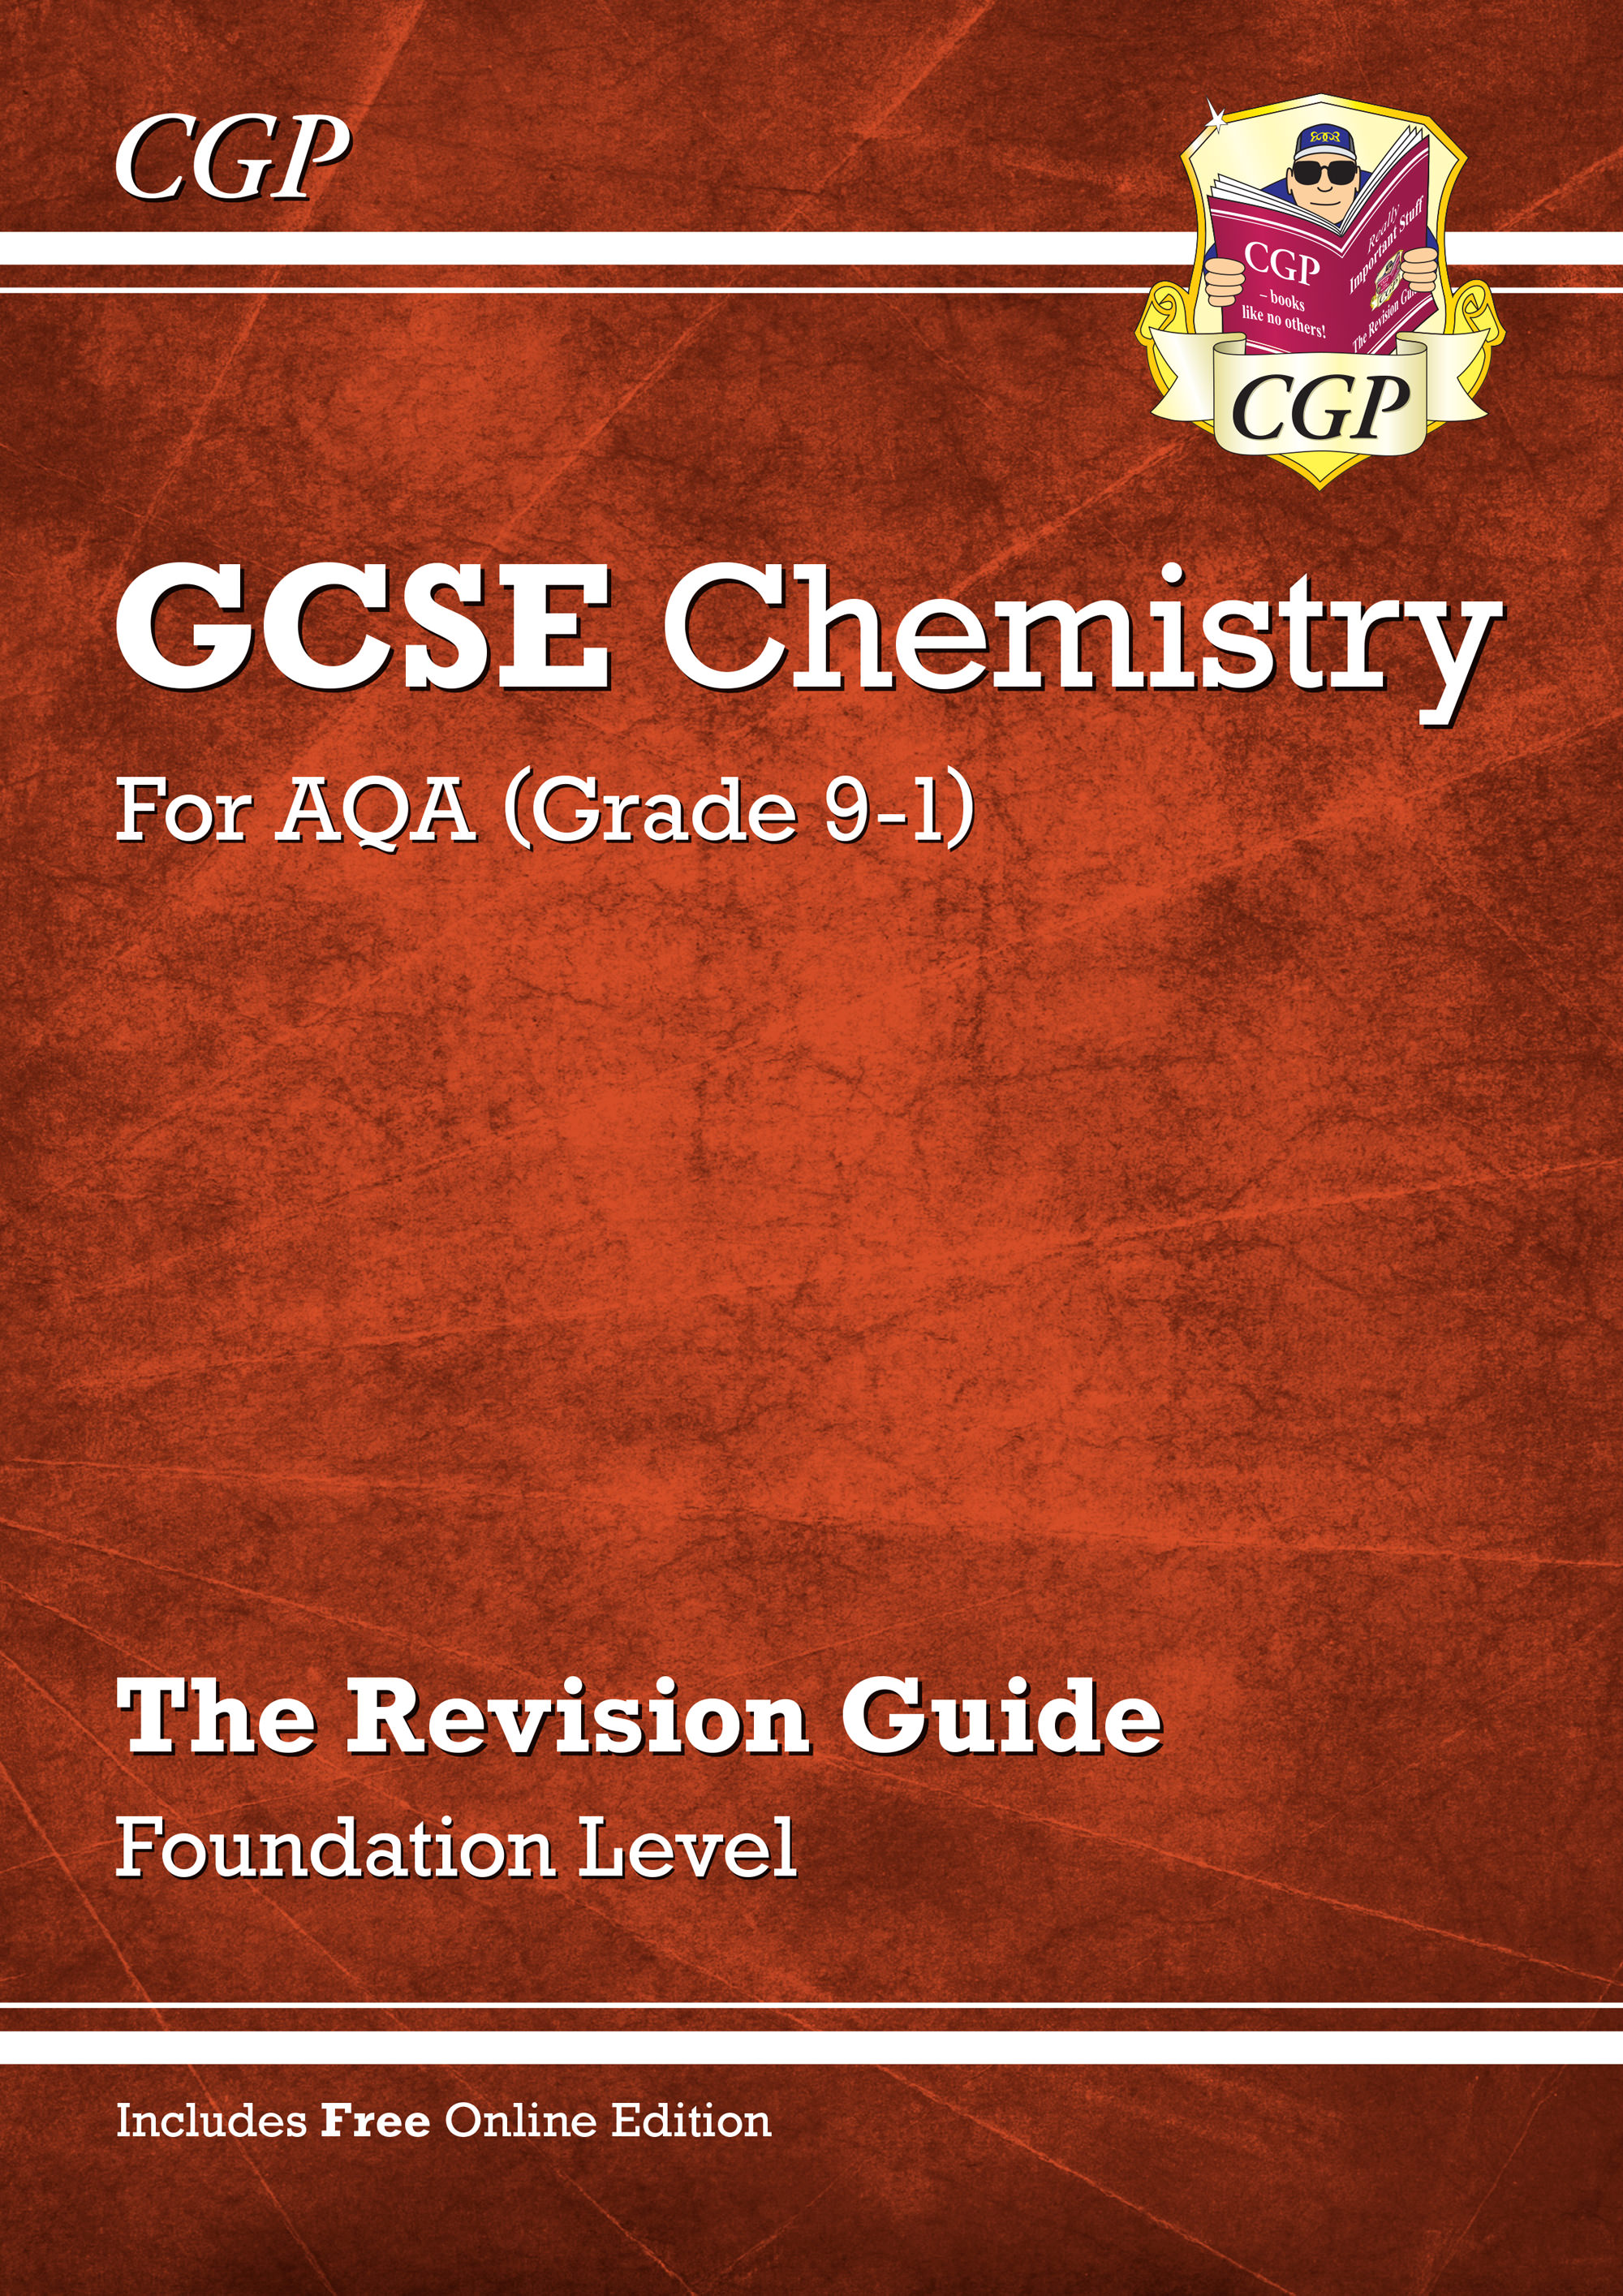 CAFR41 - New Grade 9-1 GCSE Chemistry: AQA Revision Guide with Online Edition - Foundation